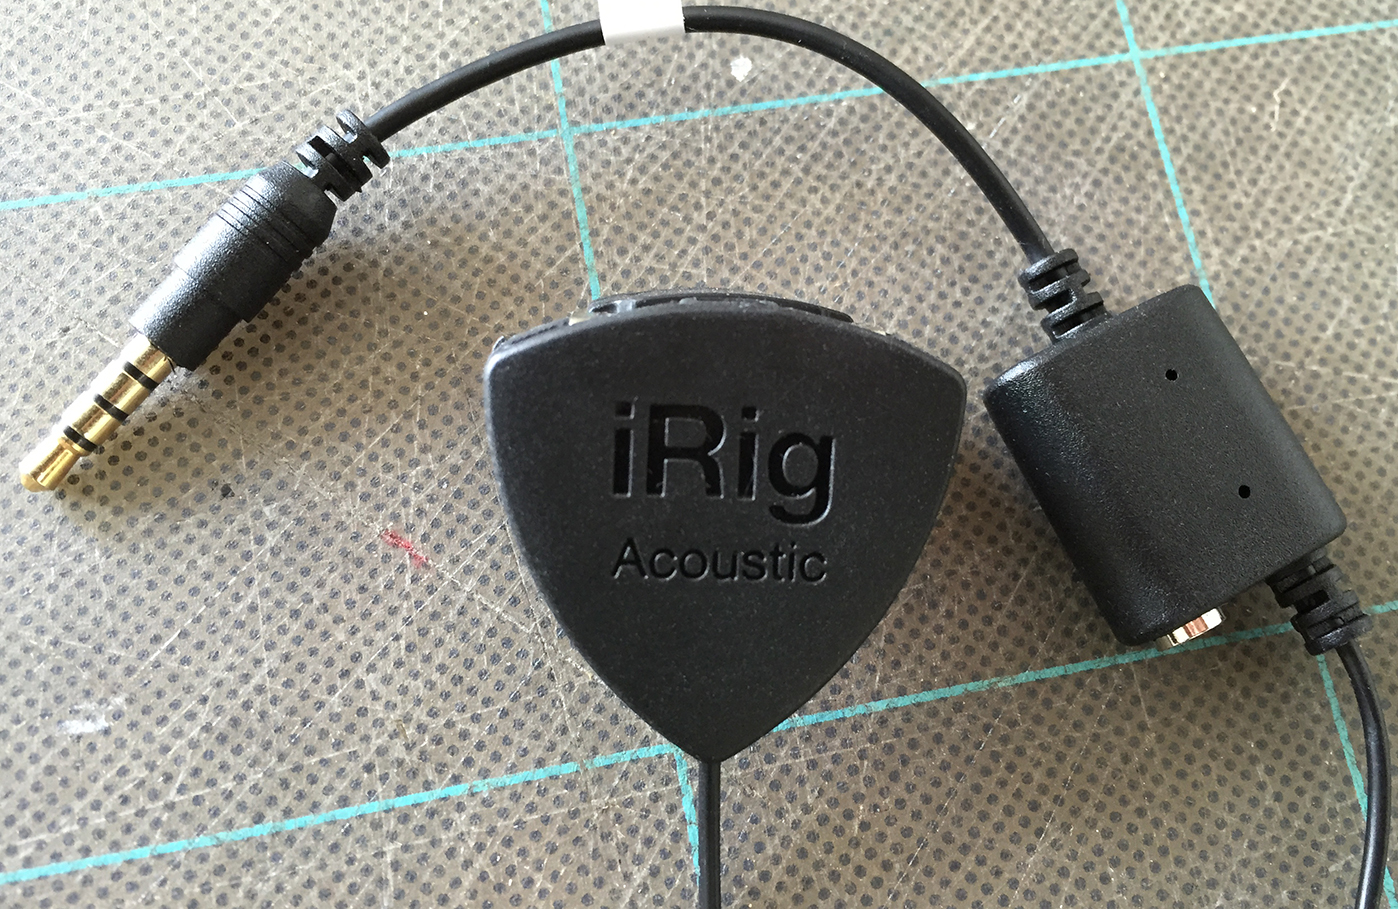 Review ~ iRig Acoustic guitar microphone/interface   Mac NZ